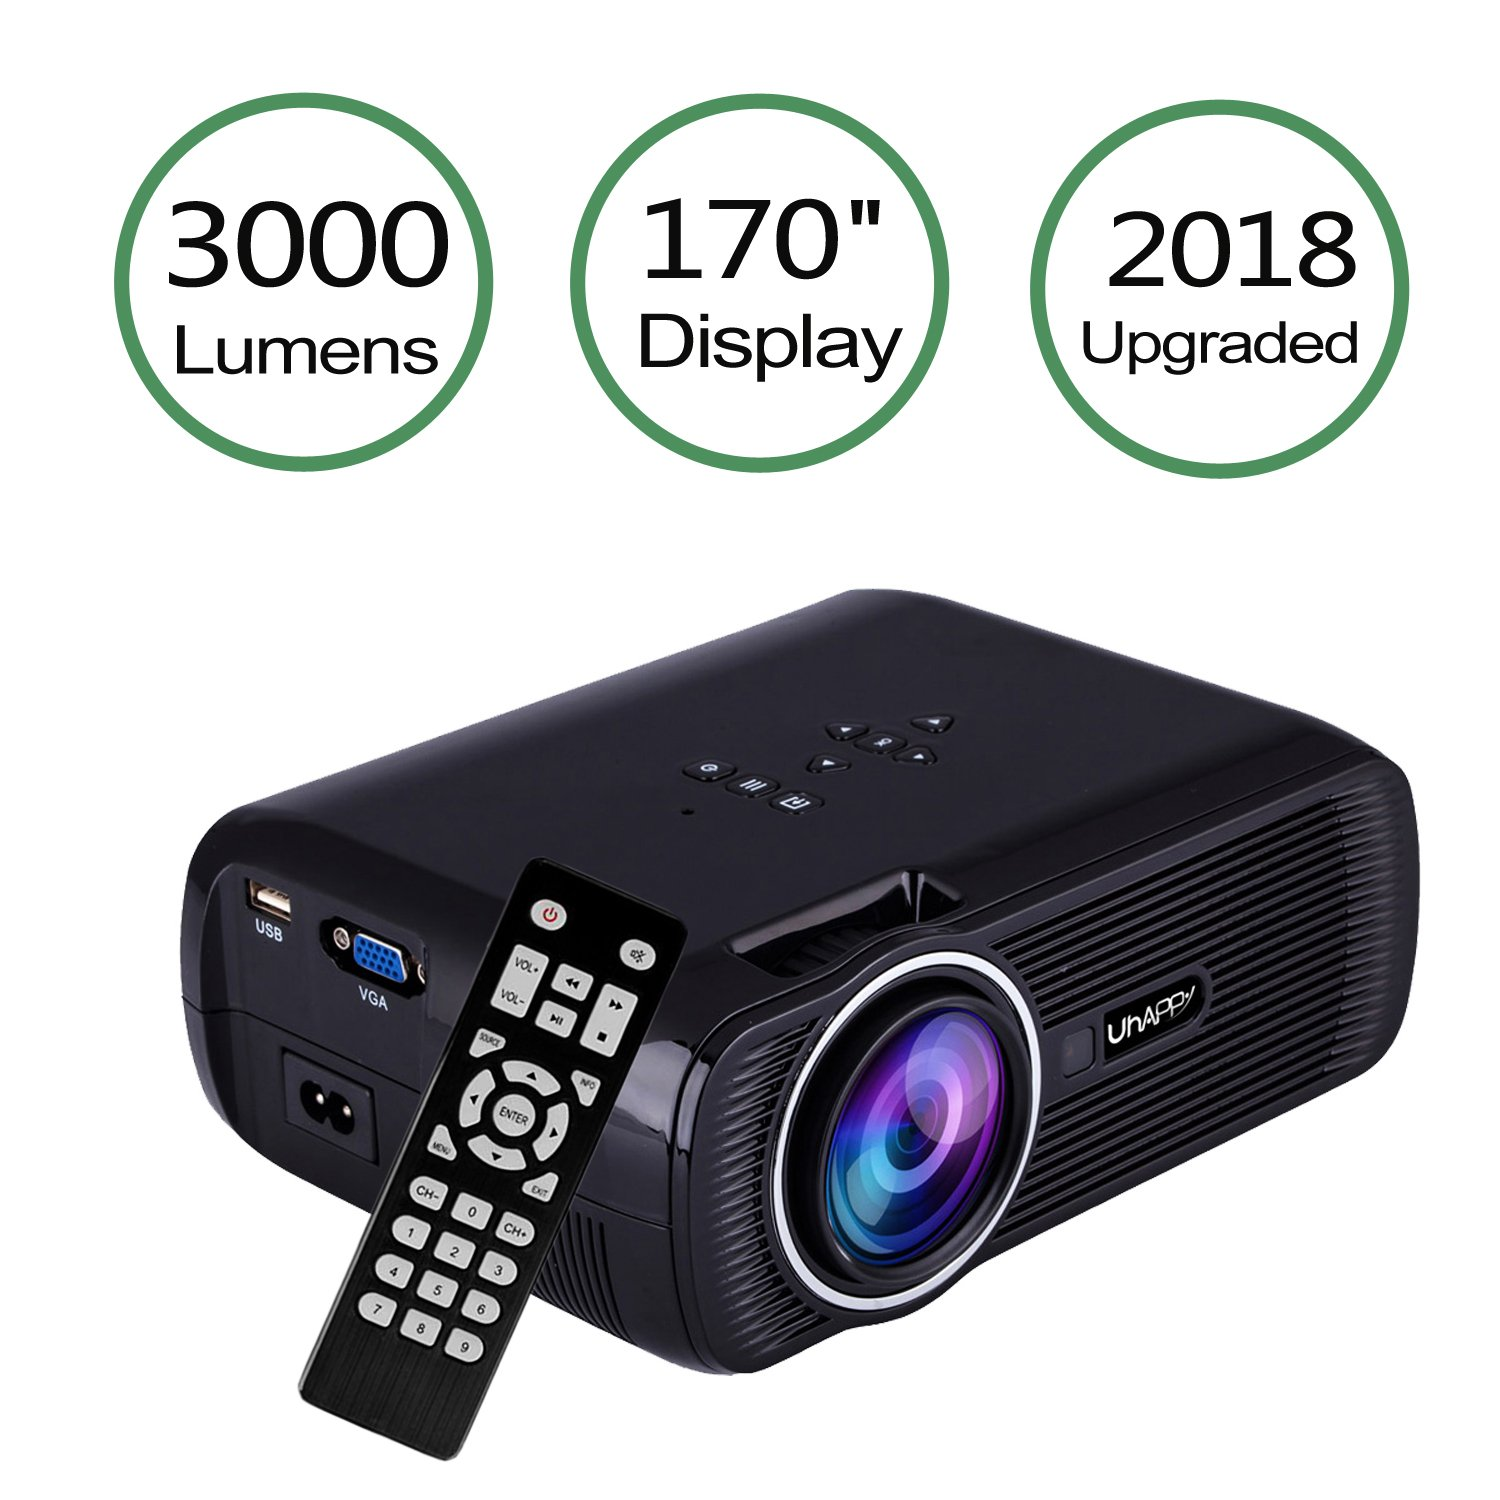 TOPRUI 2018 Mini LED Movie Video Projector, +30% Brighter Lumens Full HD Portable Projector 1080P with 170'' Big Display for Outdoor/ Home Theater HDMI,TV,SD Card,AV,VGA,USB, iPhone Android Laptop by Toprui